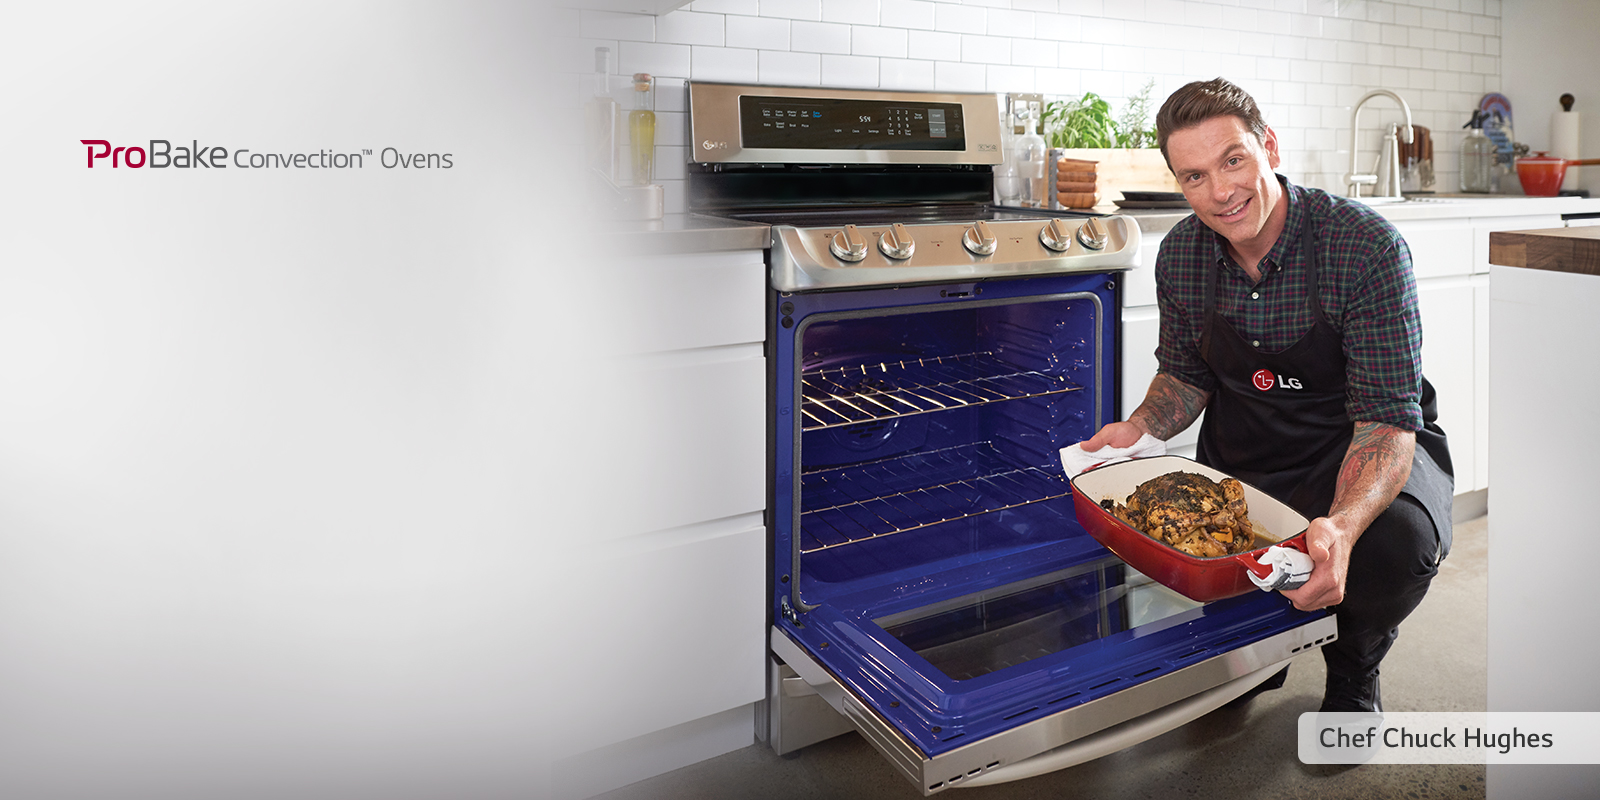 LG ProBake Convection Ranges